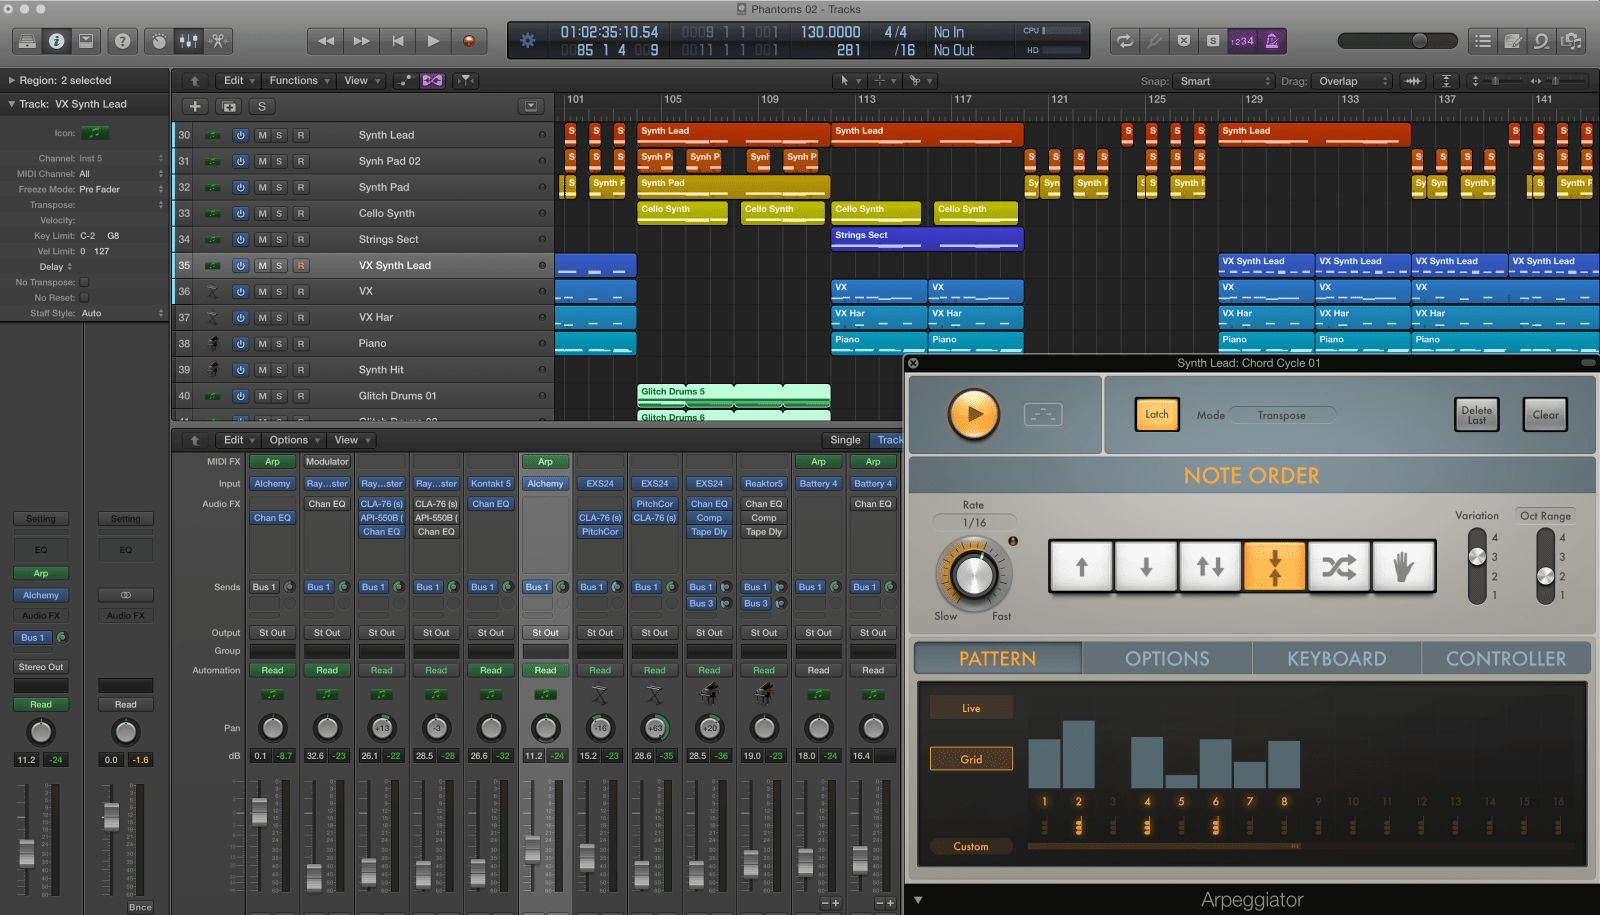 The Logic Pros: Getting the most out of Logic's built-in MIDI Arpeggiator